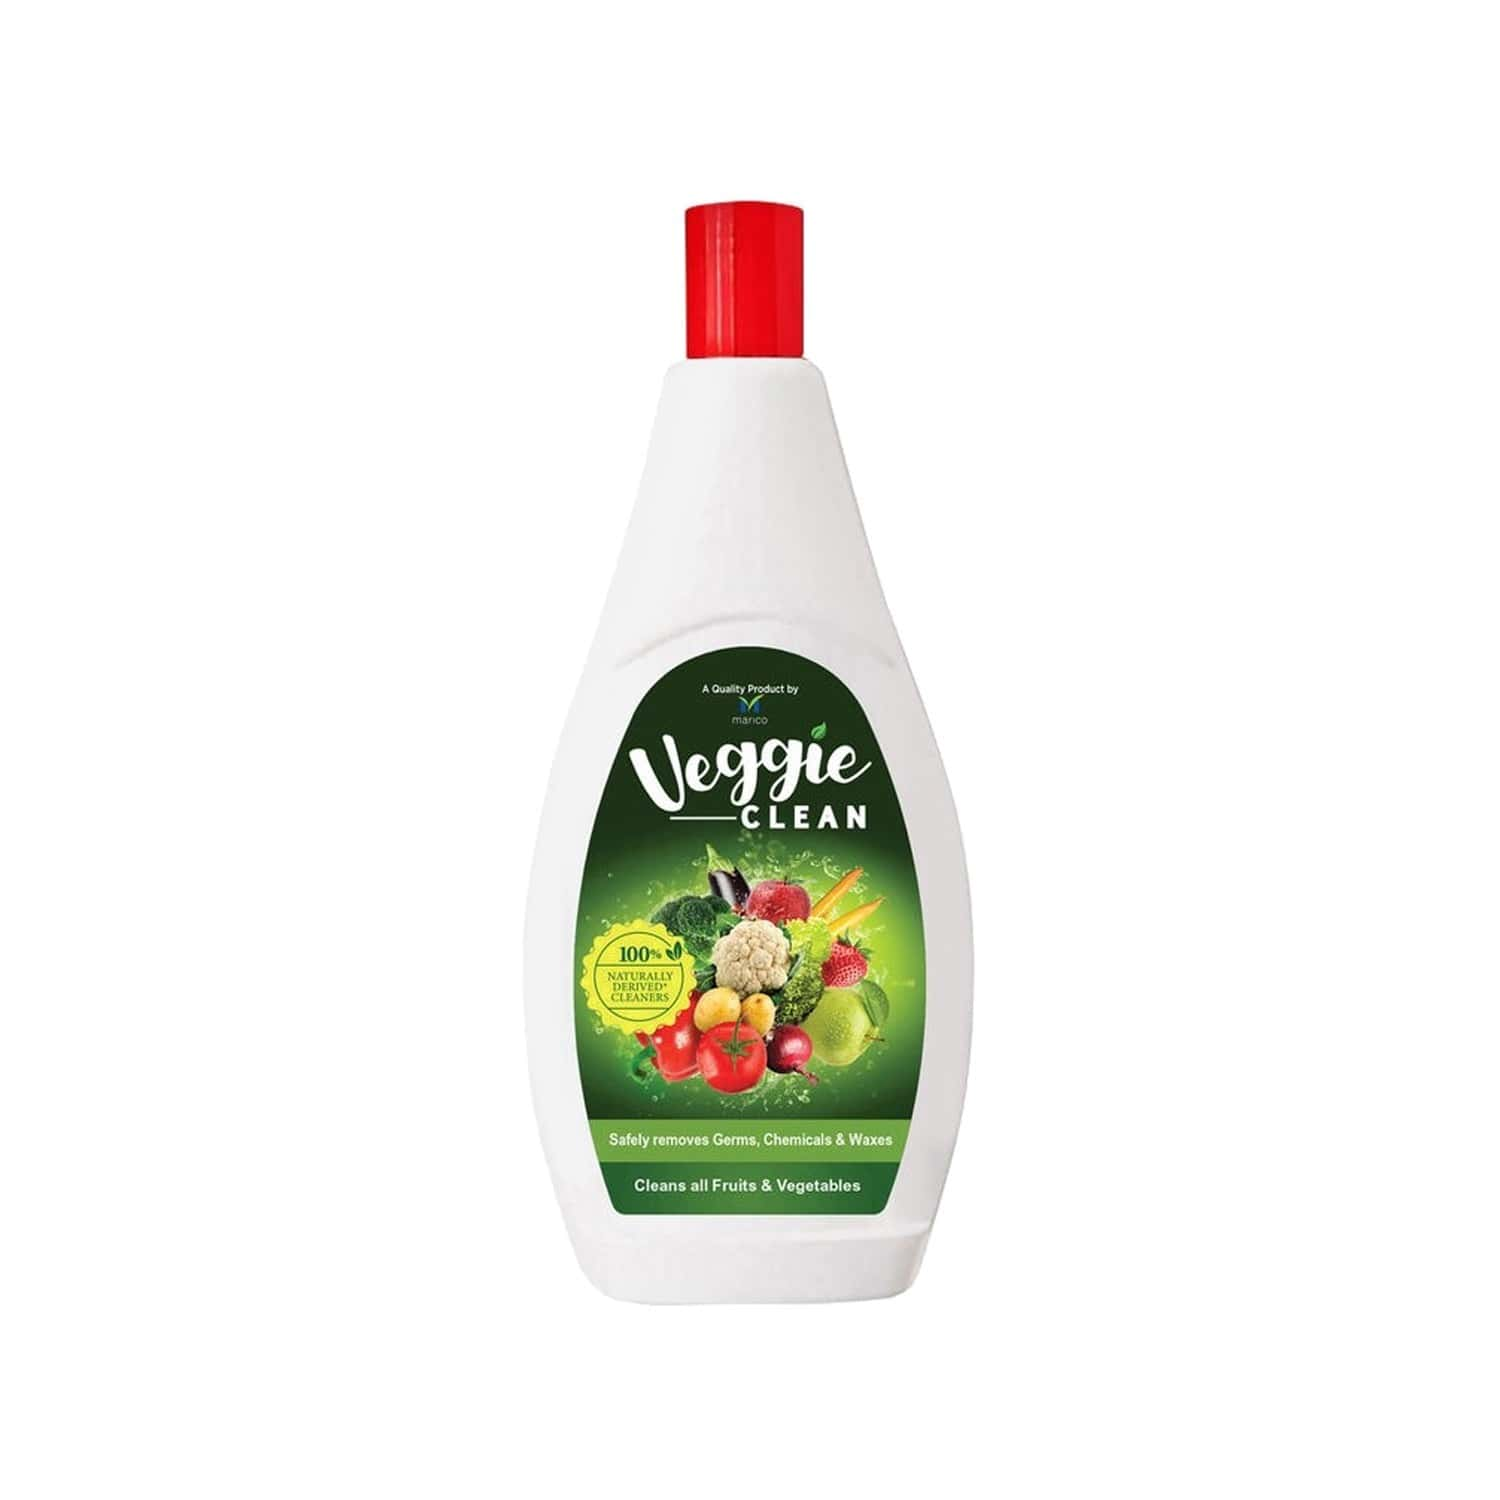 Veggie Clean,fruits And Vegetables Washing Liquid,removes Germs,chemicals,waxes,200 Ml